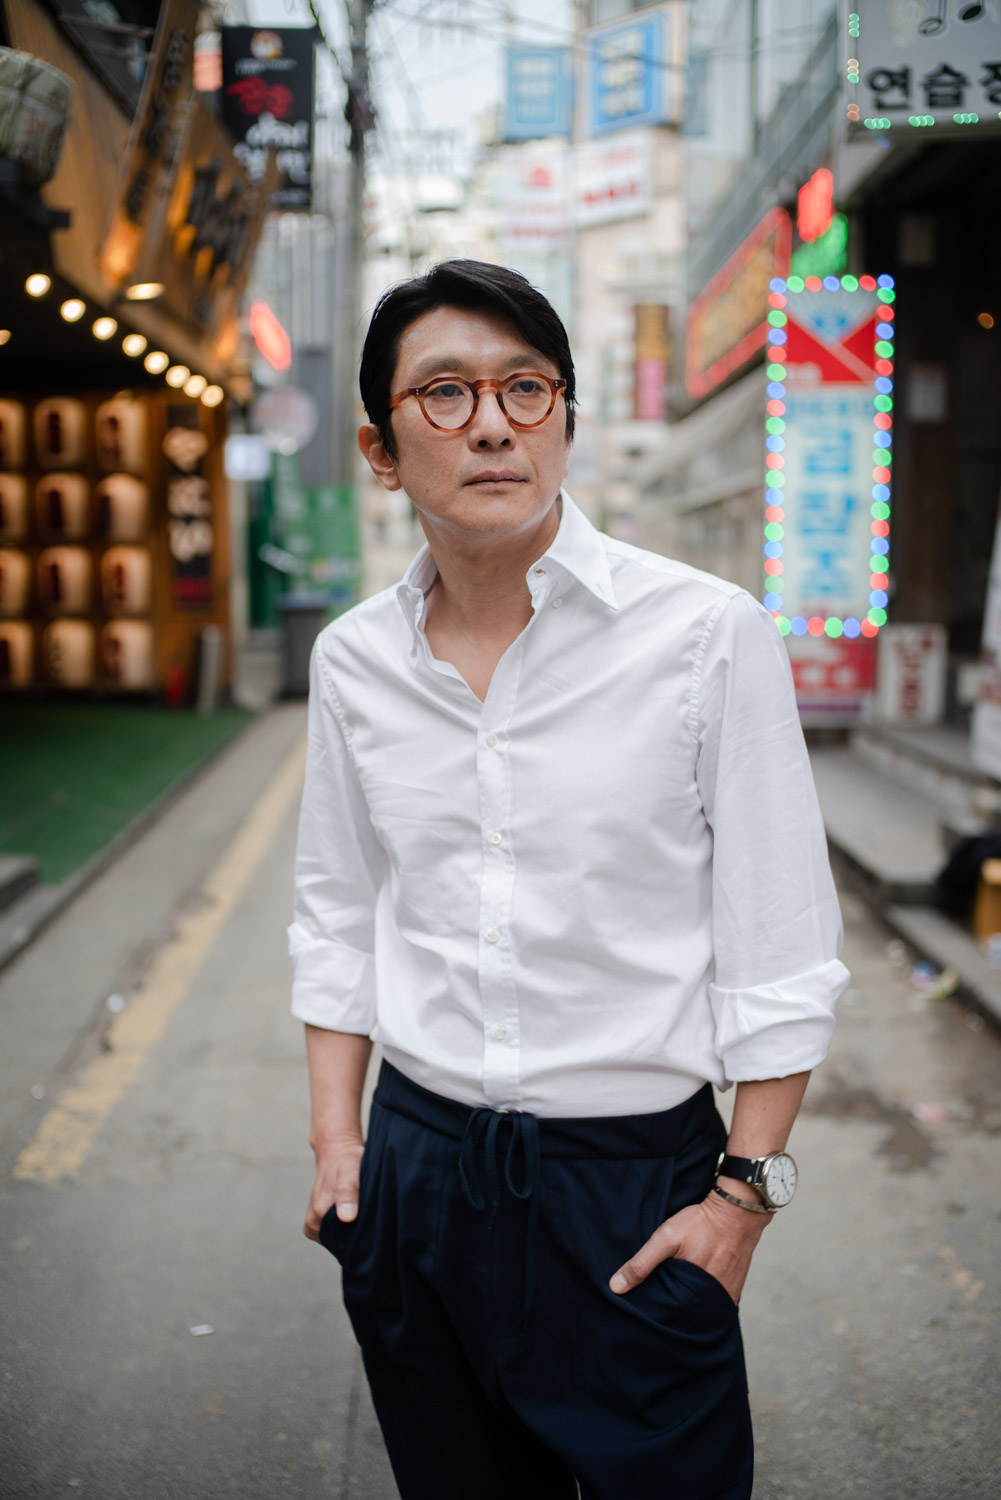 Montana Young-hoon Choi wearing a Système Glashütte and posing in the back streets of the Gangnam district of Seoul. Tim Franco for the New York Times.